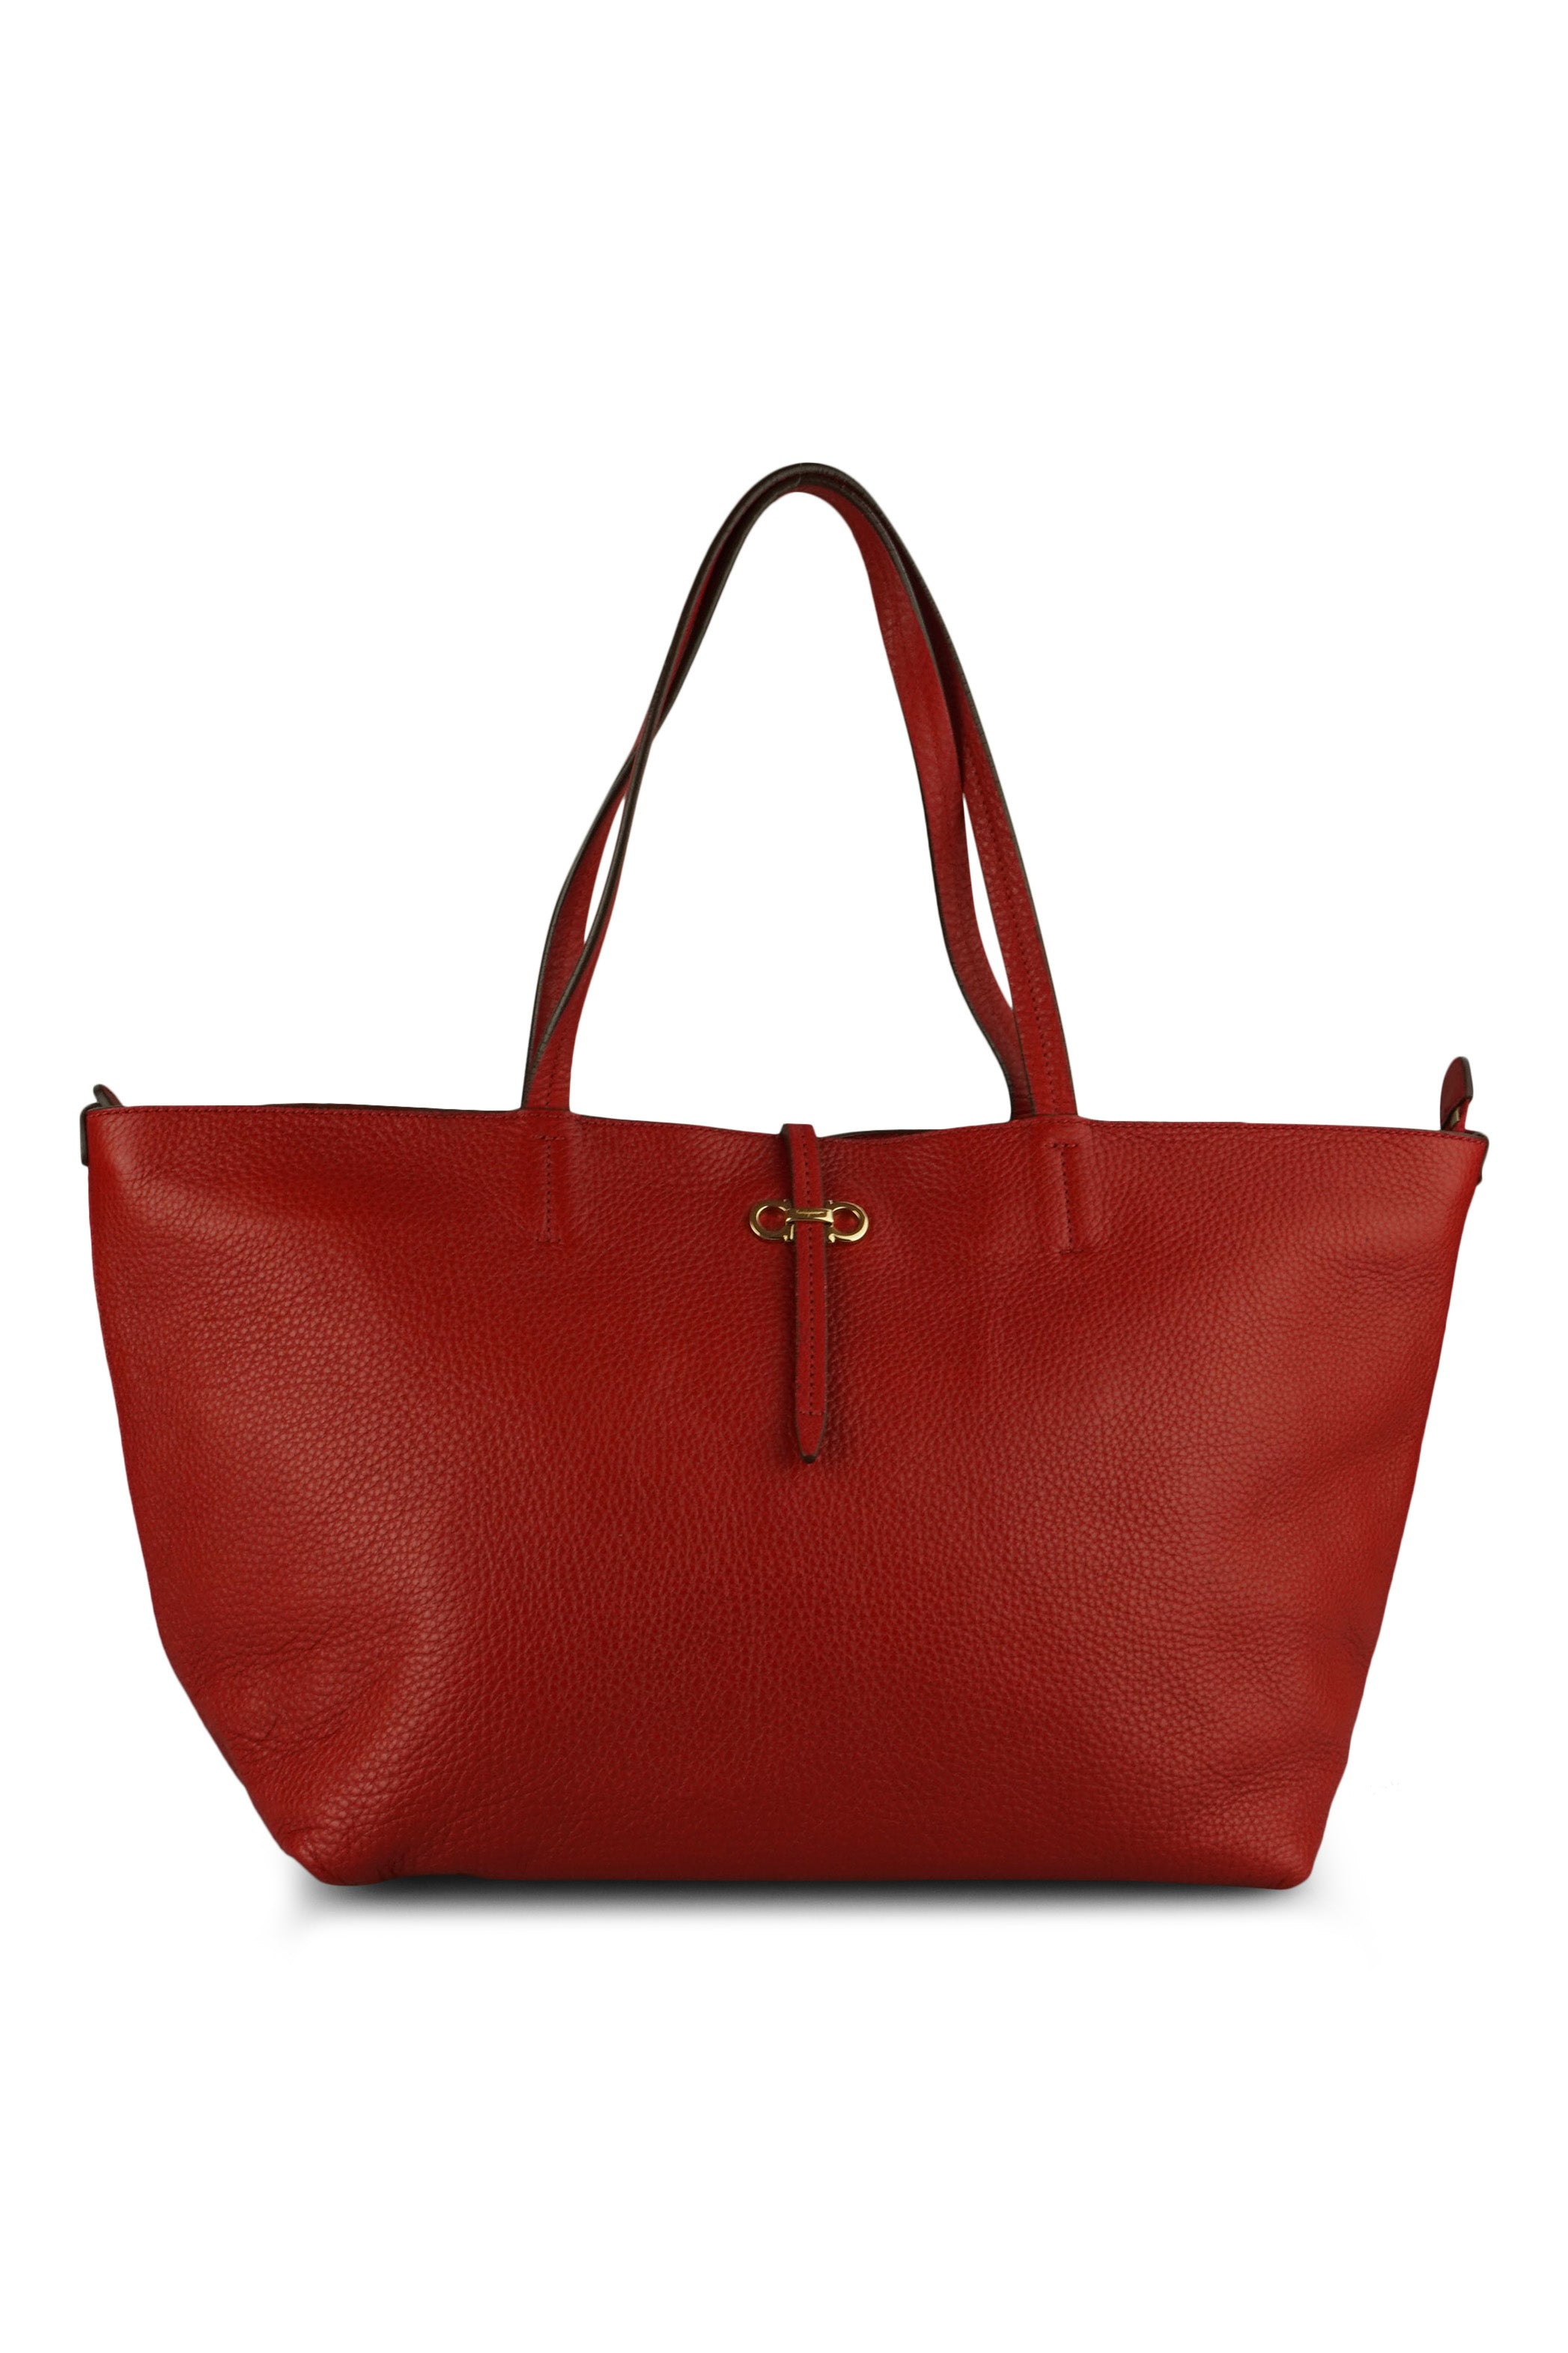 Shoulder Bag for Women On Sale, Red, Leather, 2017, one size Salvatore Ferragamo